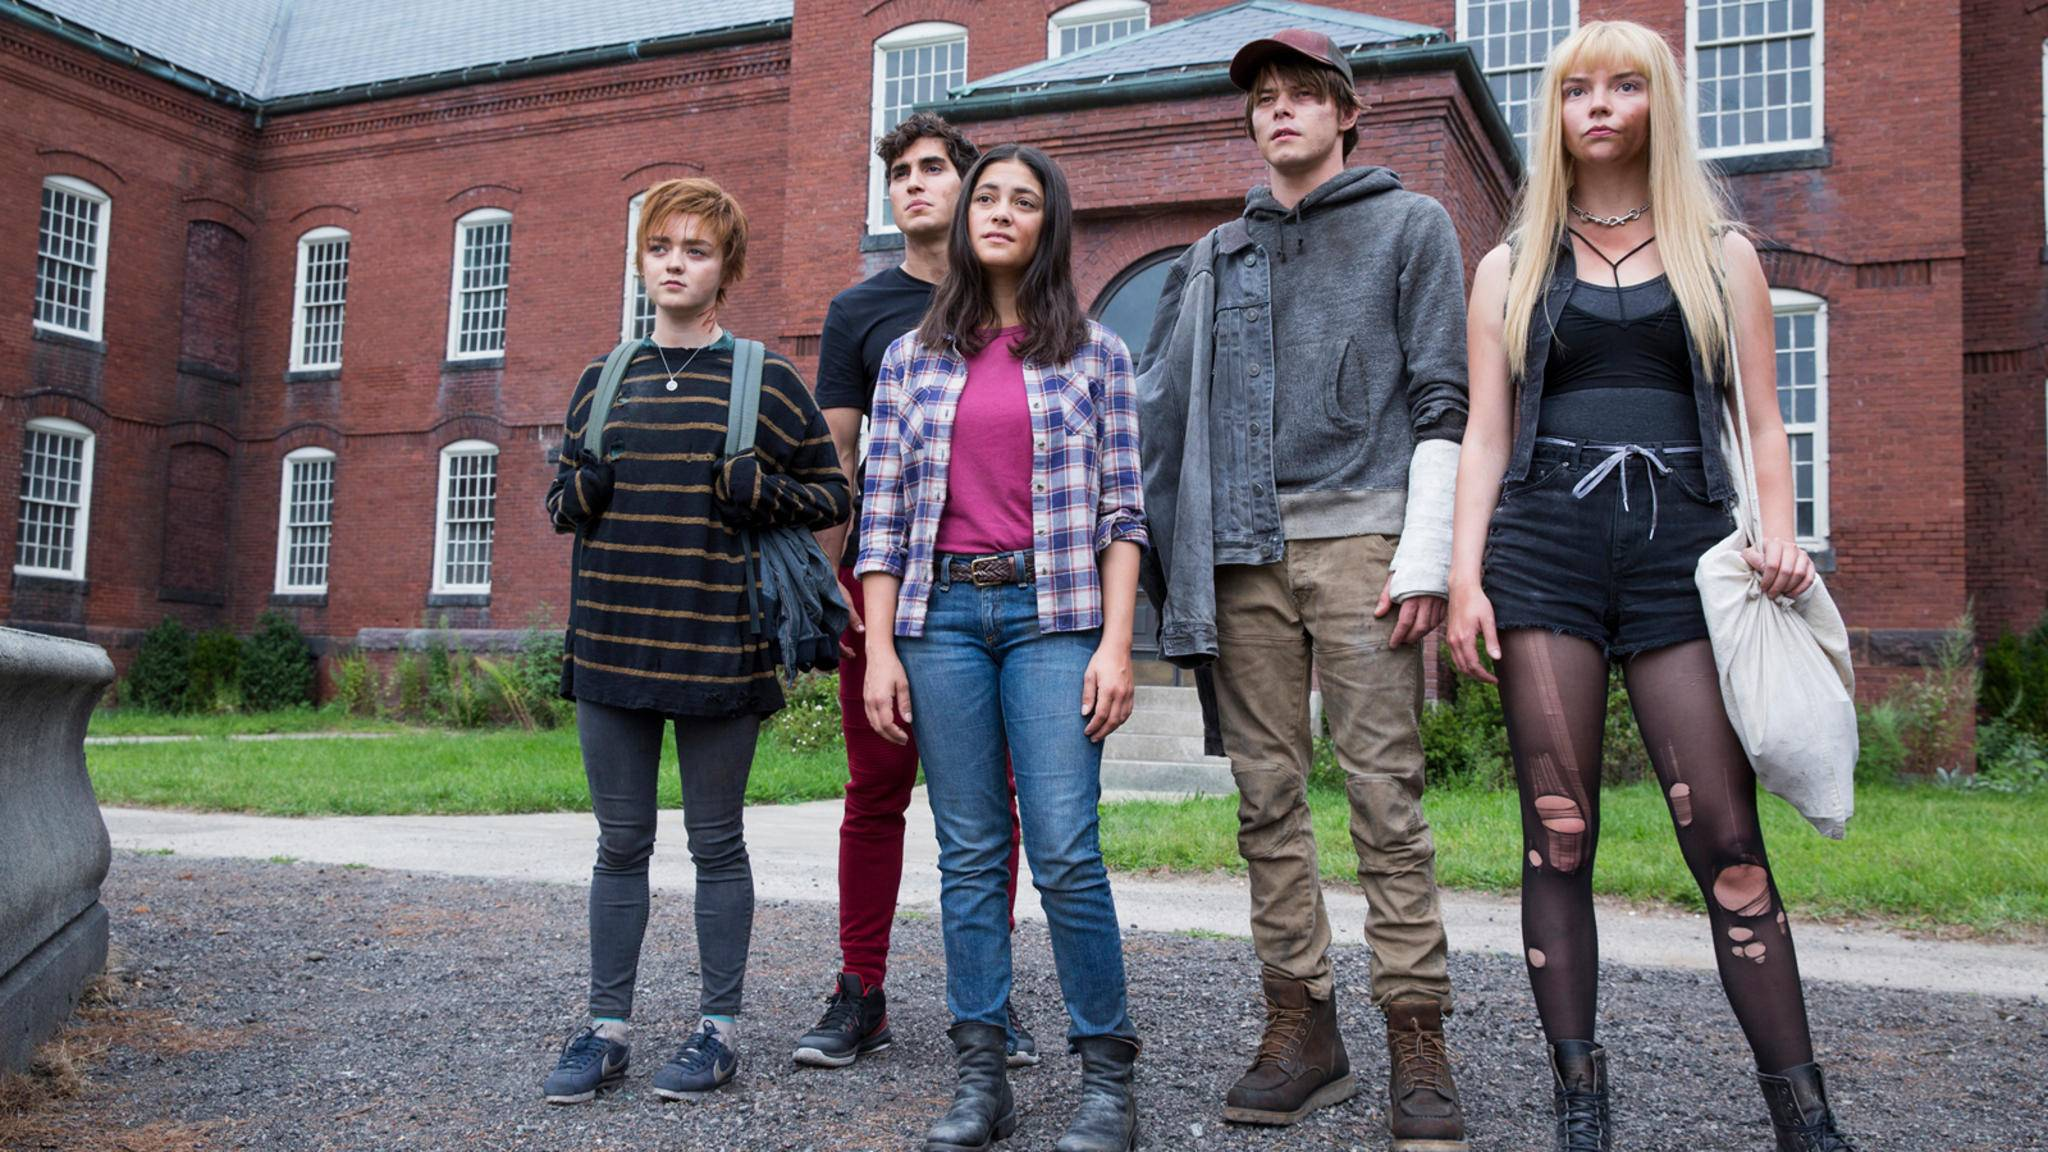 New Mutants: Maisie Williams, Henry Zaga, Blu Hunt, Charlie Heaton, Anya Taylor-Joy